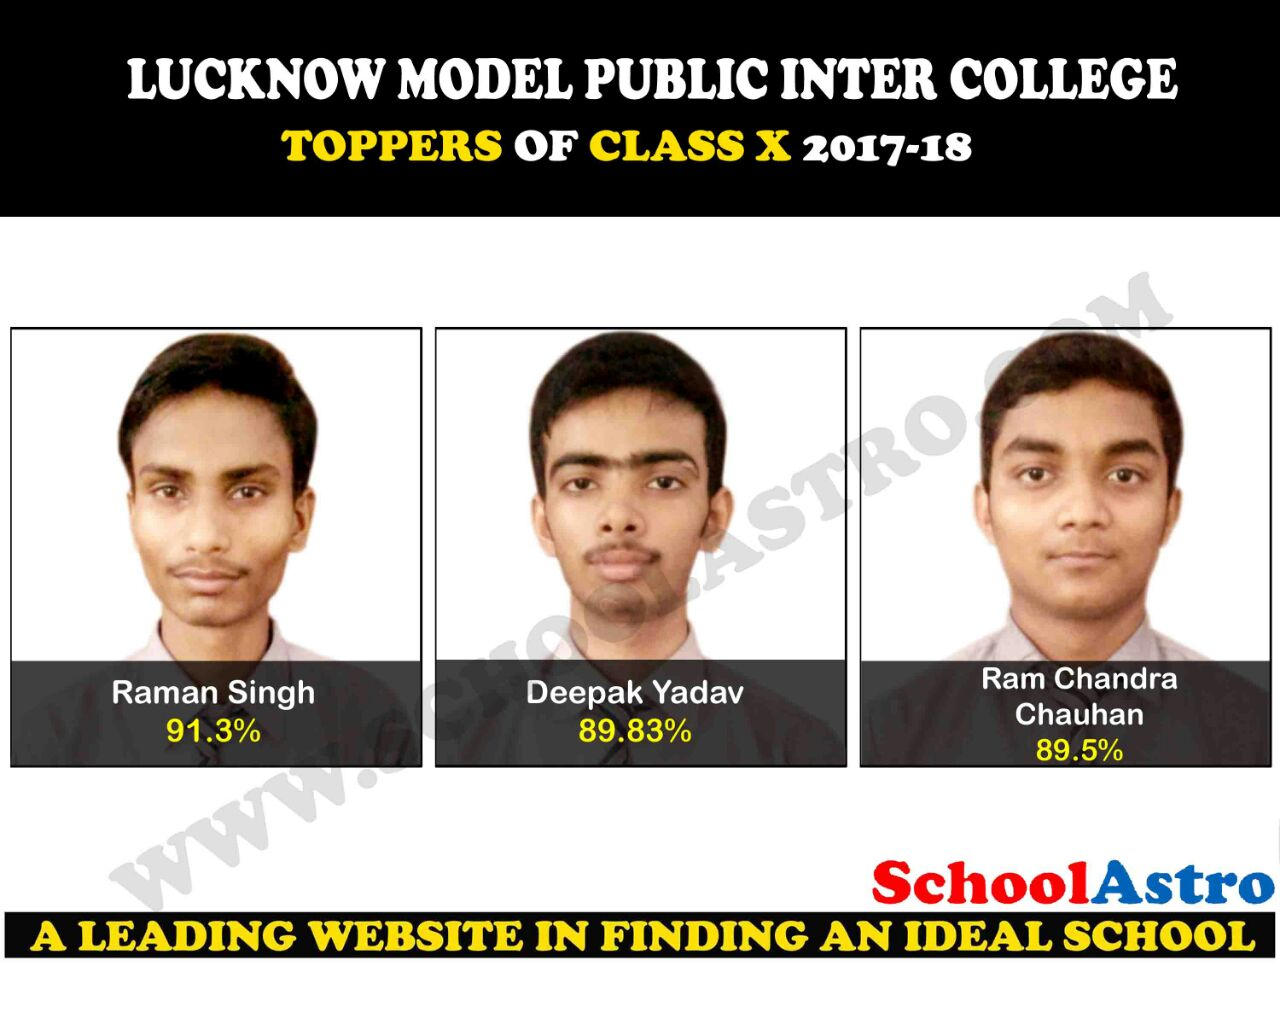 SUCCESS STORY OF LUCKNOW MODEL PUBLIC INTER COLLEGE